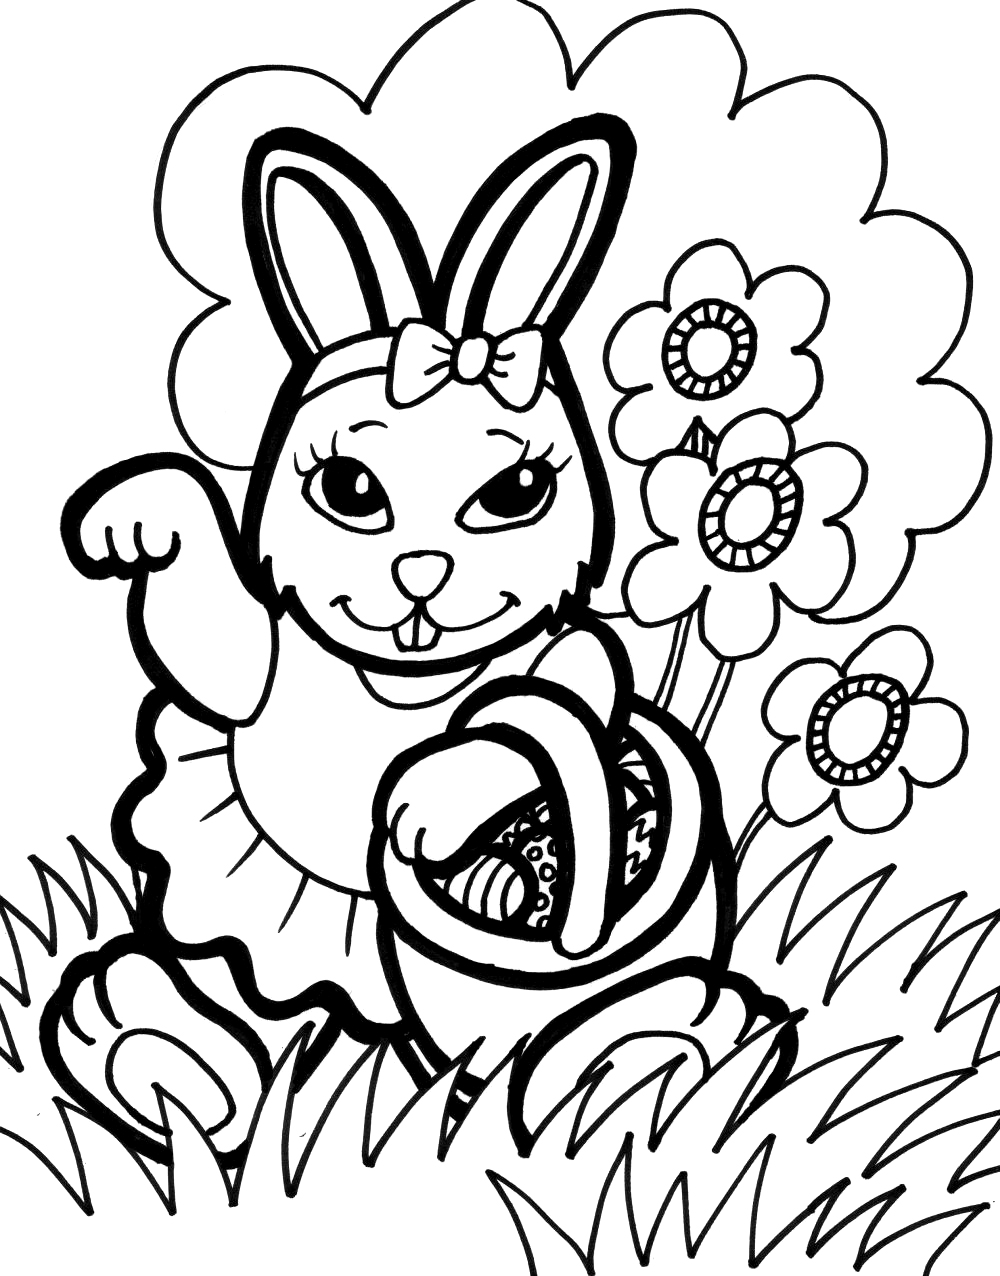 1000x1276 Special Pictures Of Bunnies To Color Cool Gallery Ideas